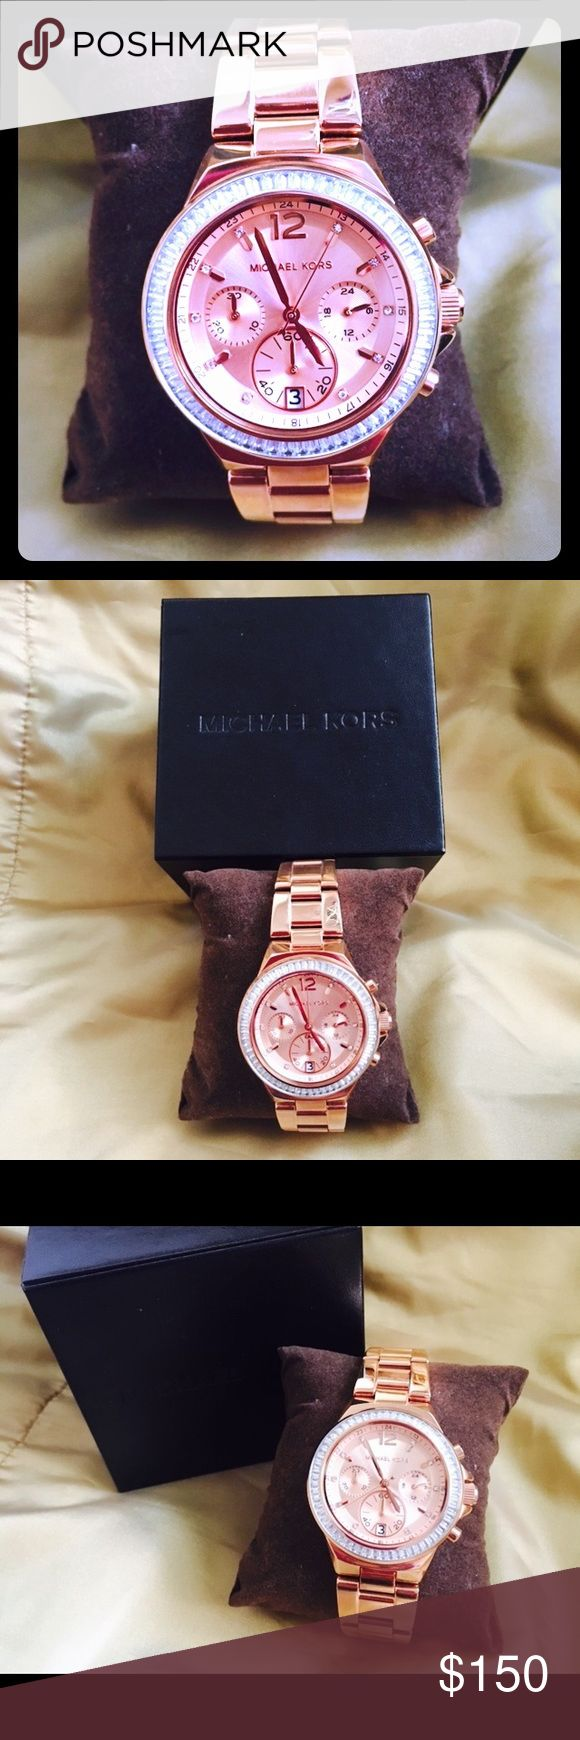 Michael Kors Chronograph Ladies Watch MK6213 New Authentic Michael Kors Chronograph Ladies Watch MK6213 no tag. Rose gold tone stainless steel case with a rose gold tone stainless steel bracelet. Brand New no Tag but comes with original MK Box. ❌Sorry no trades Open to Offers. Michael Kors Accessories Watches